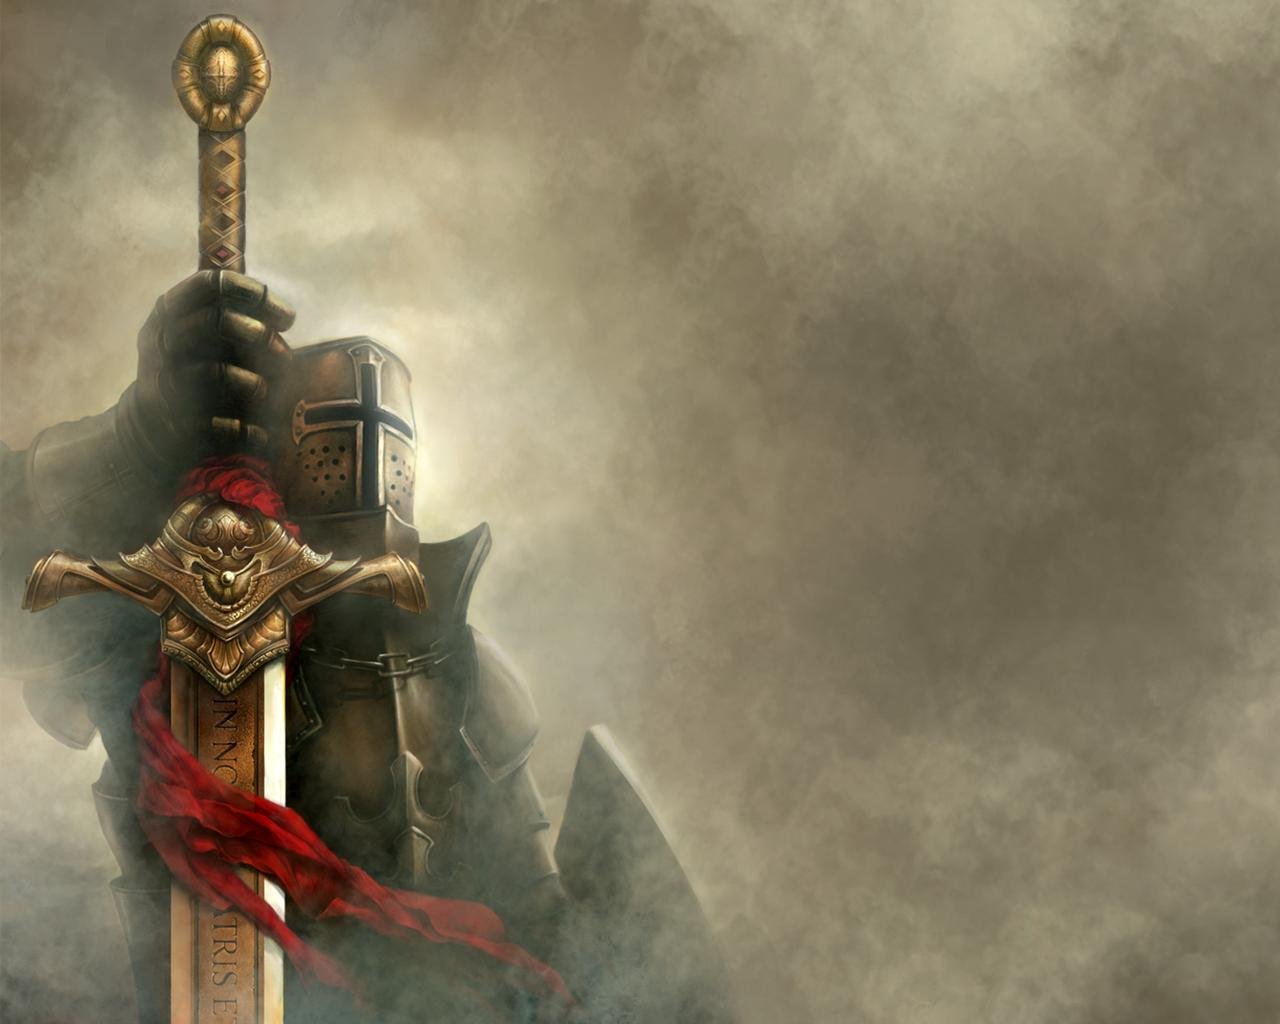 Knights  Warriors  Medieval Christian Crusaders Wallpaper